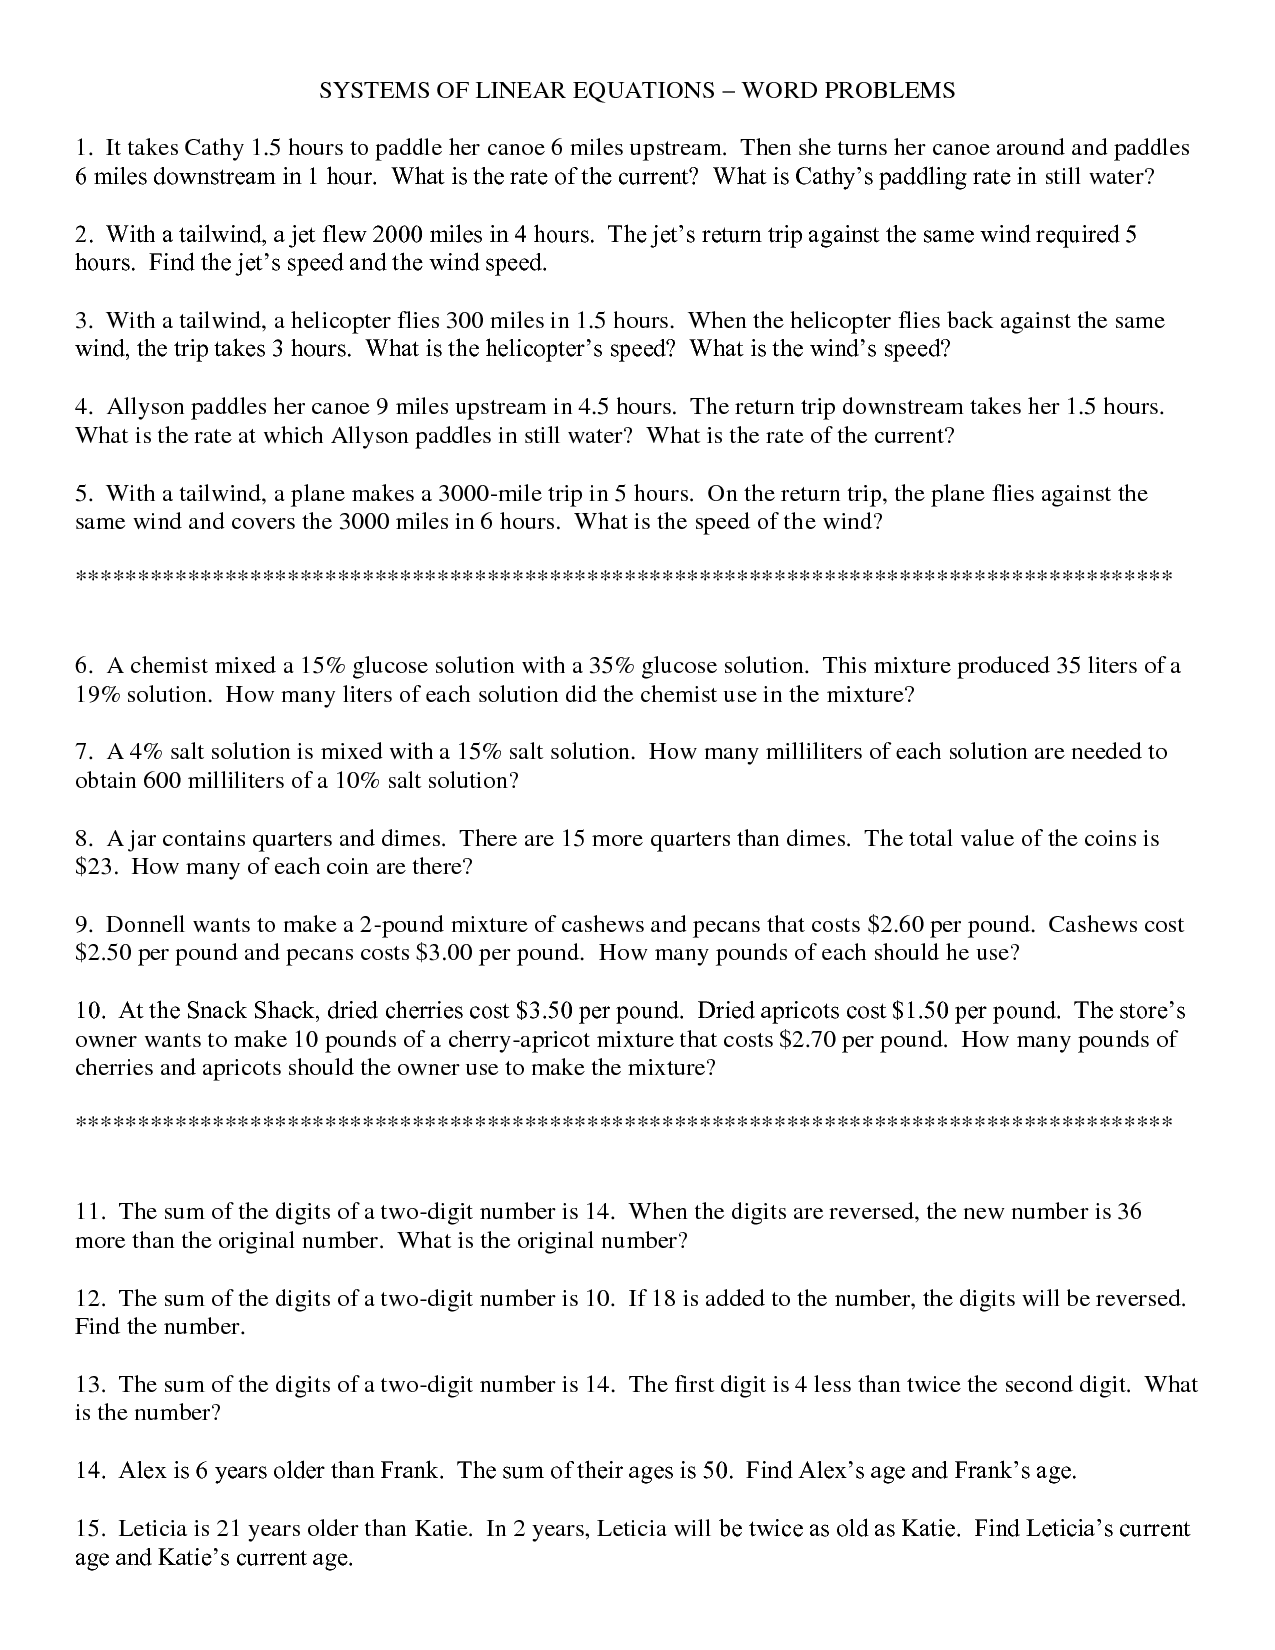 15 Best Images of Translating Words To Equations Worksheets  Translating Algebraic Expressions